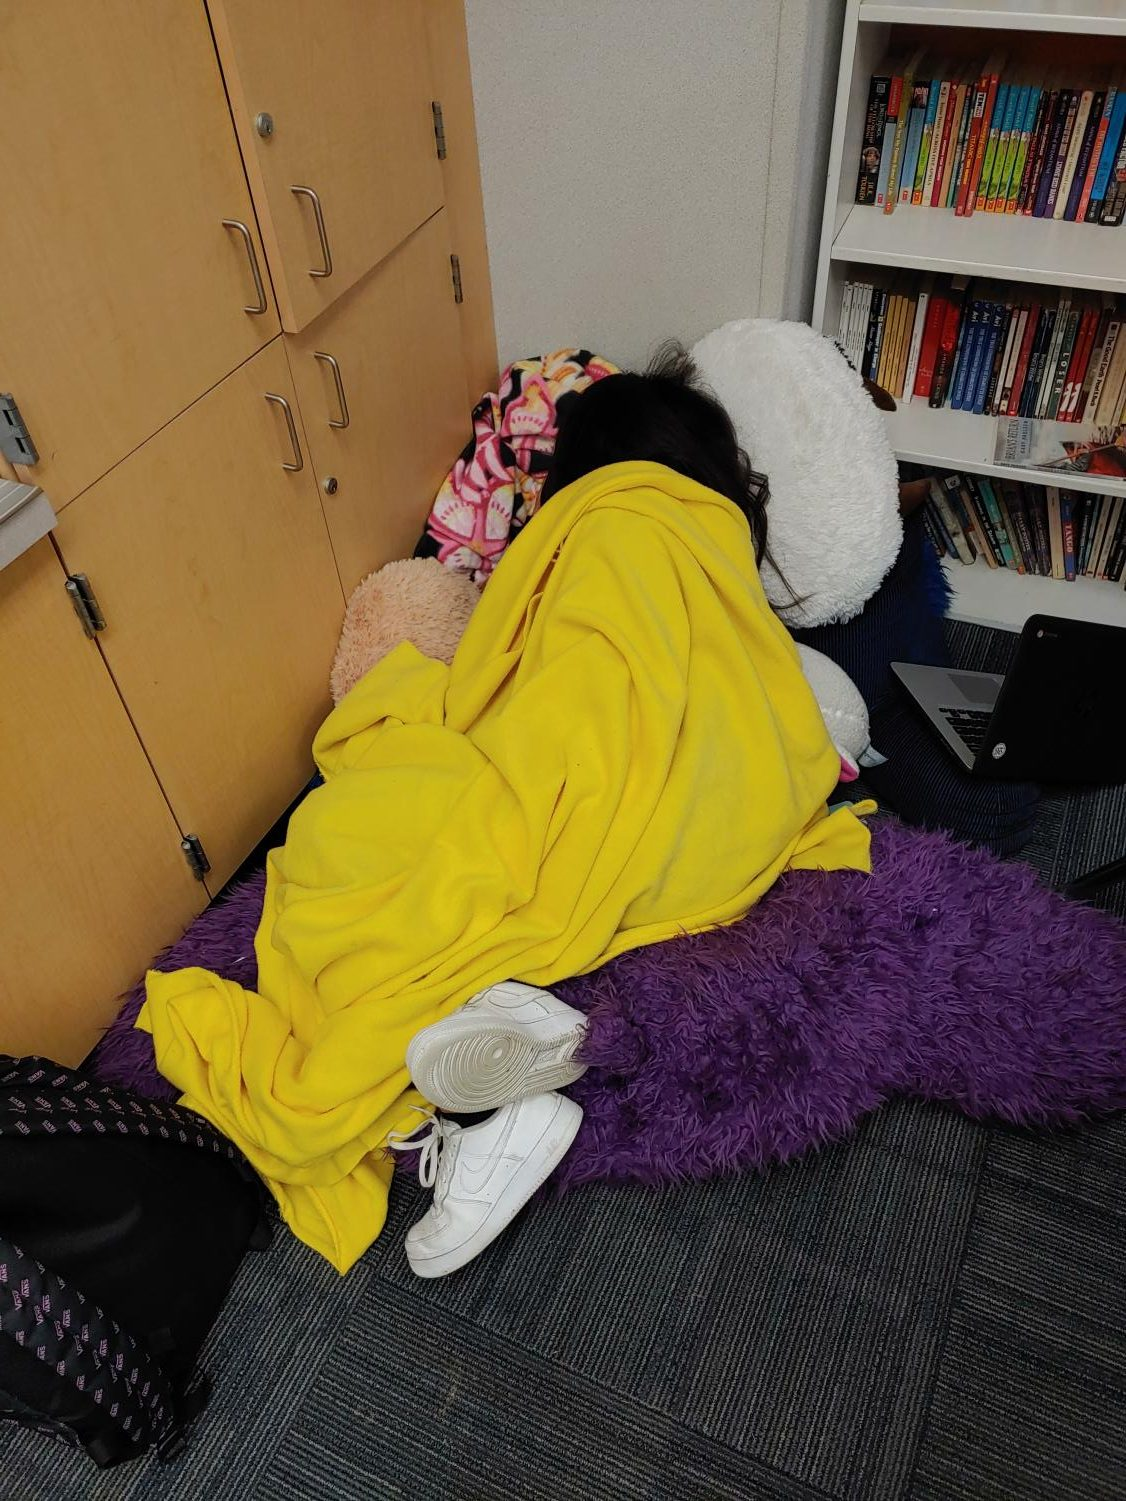 A picture of a productive student sleeping in a class.